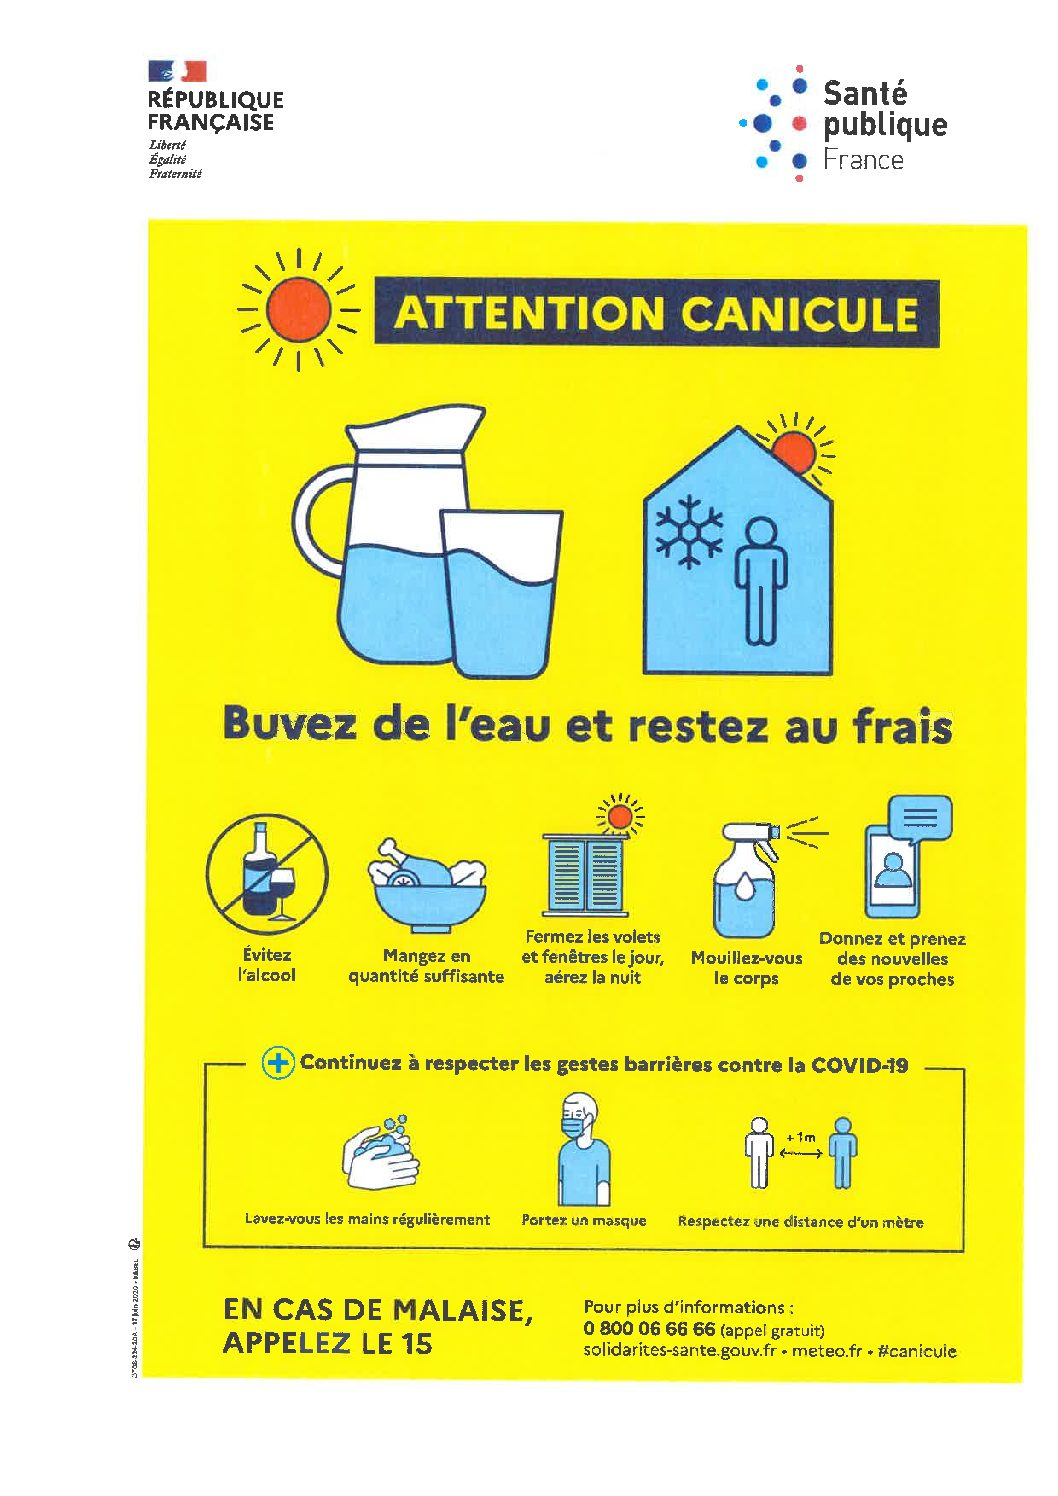 ATTENTION CANICULE